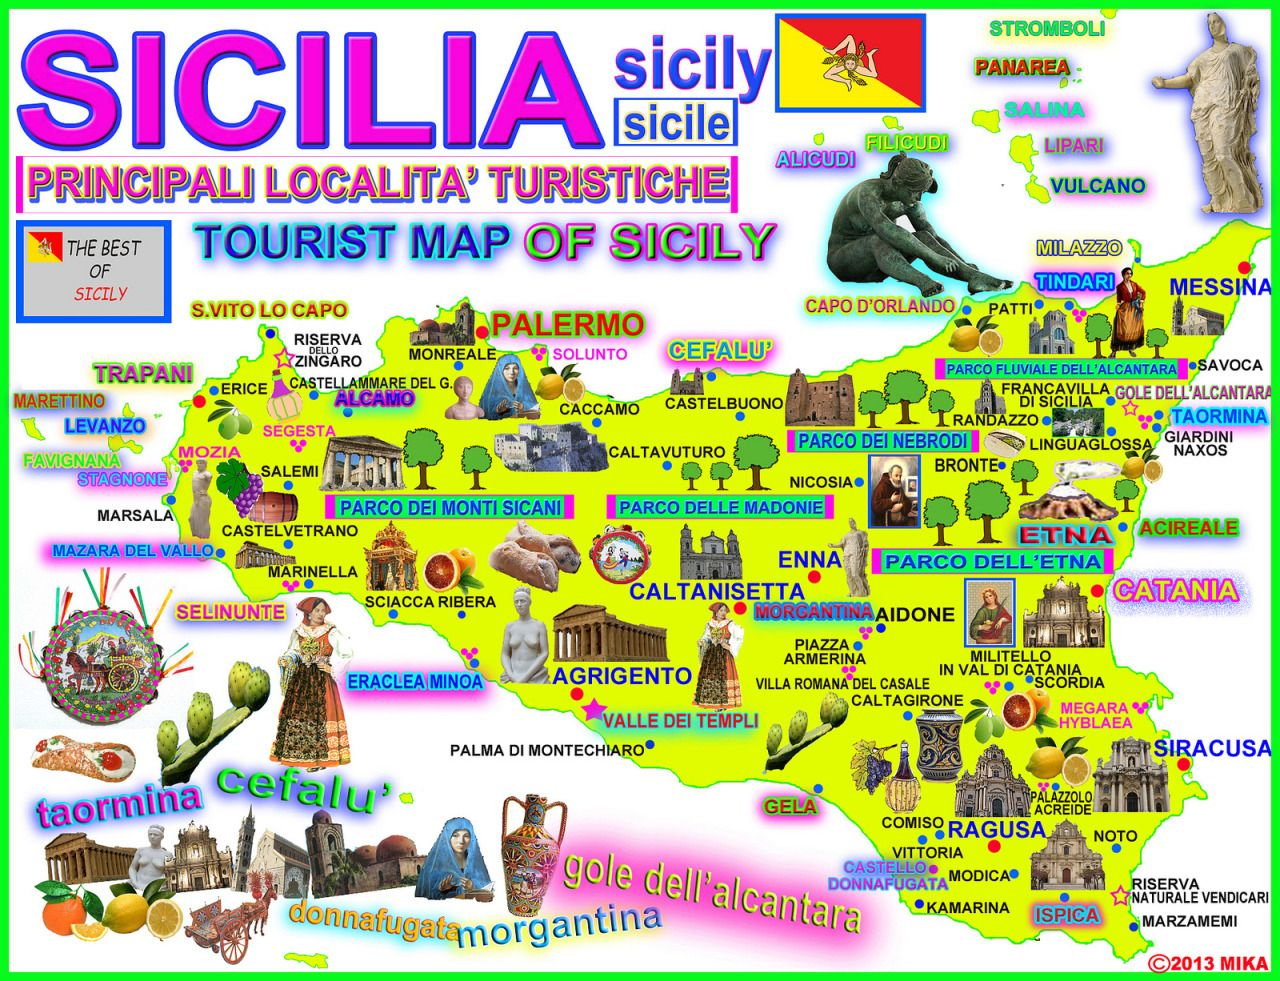 Map of Sicily and its main attractions